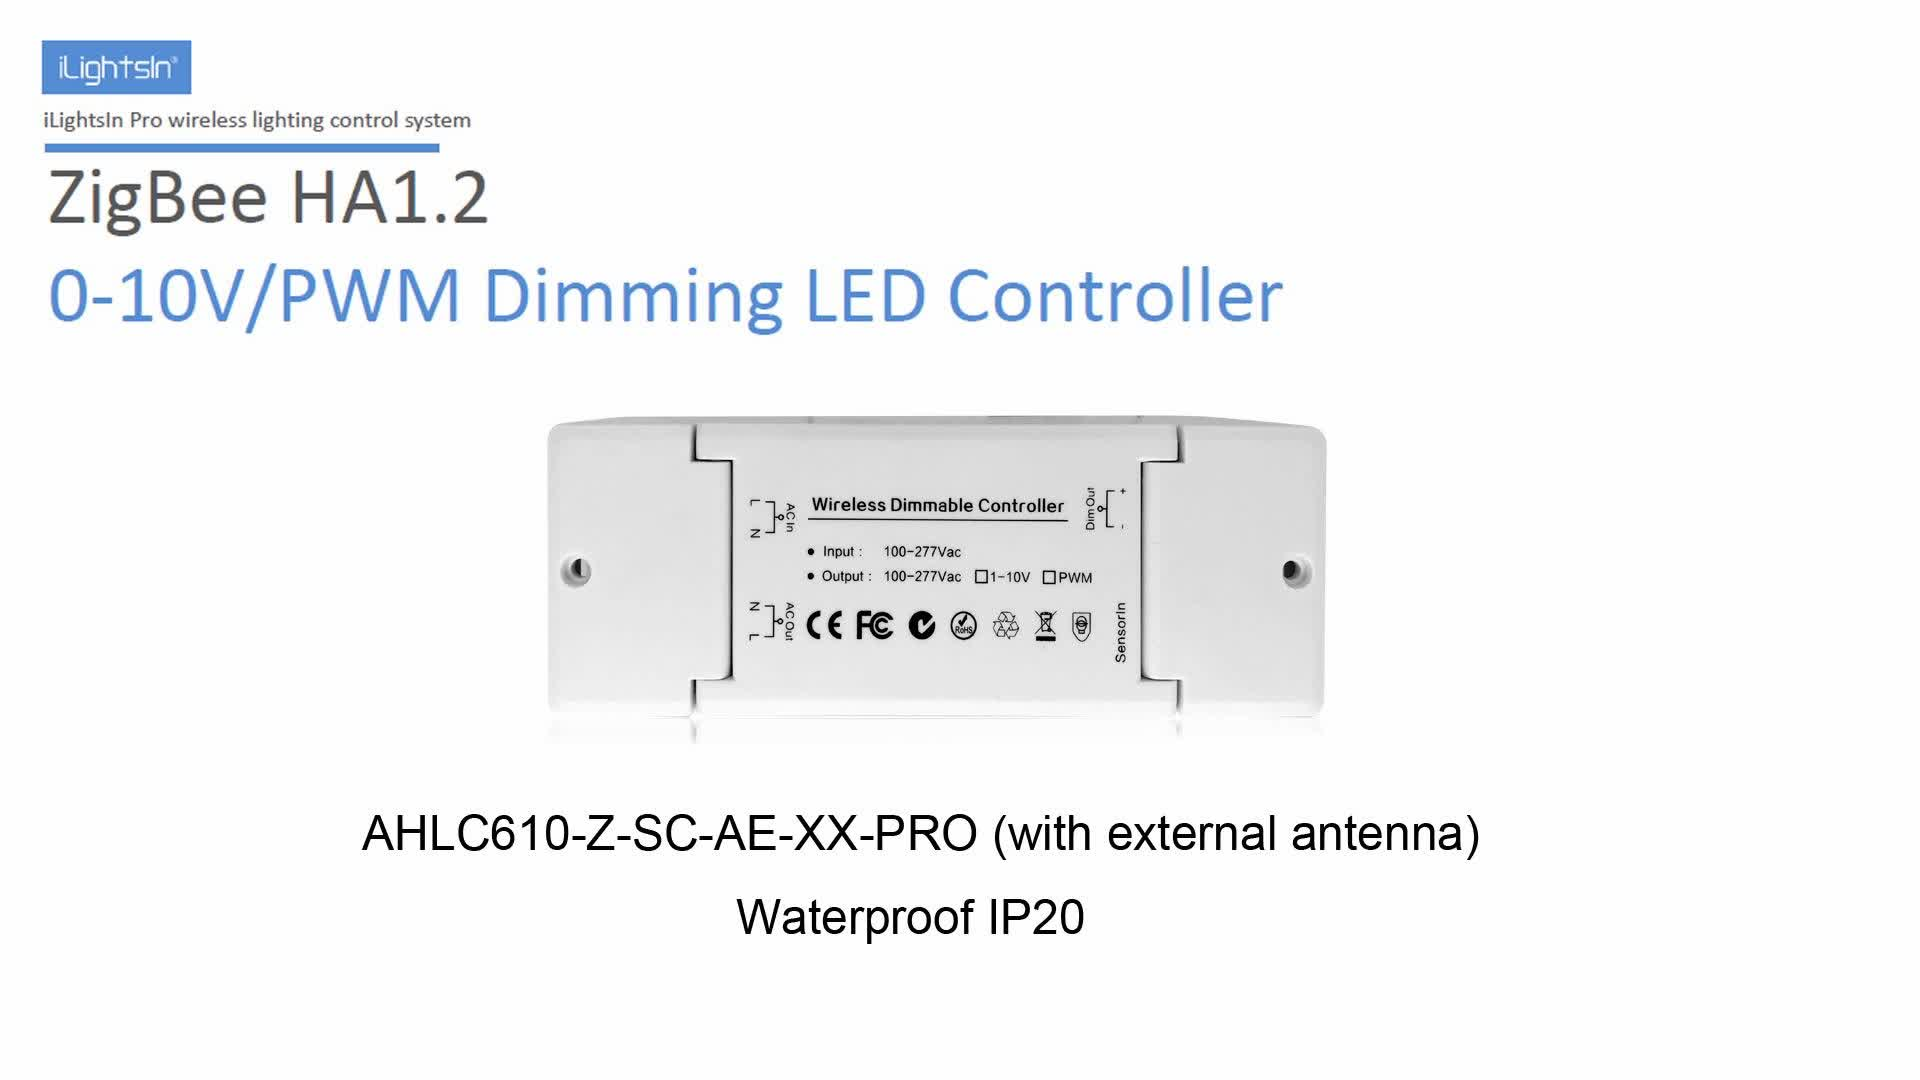 zigbee 0-10v pwm wireless remote control programmable automatic led light dimmer controller